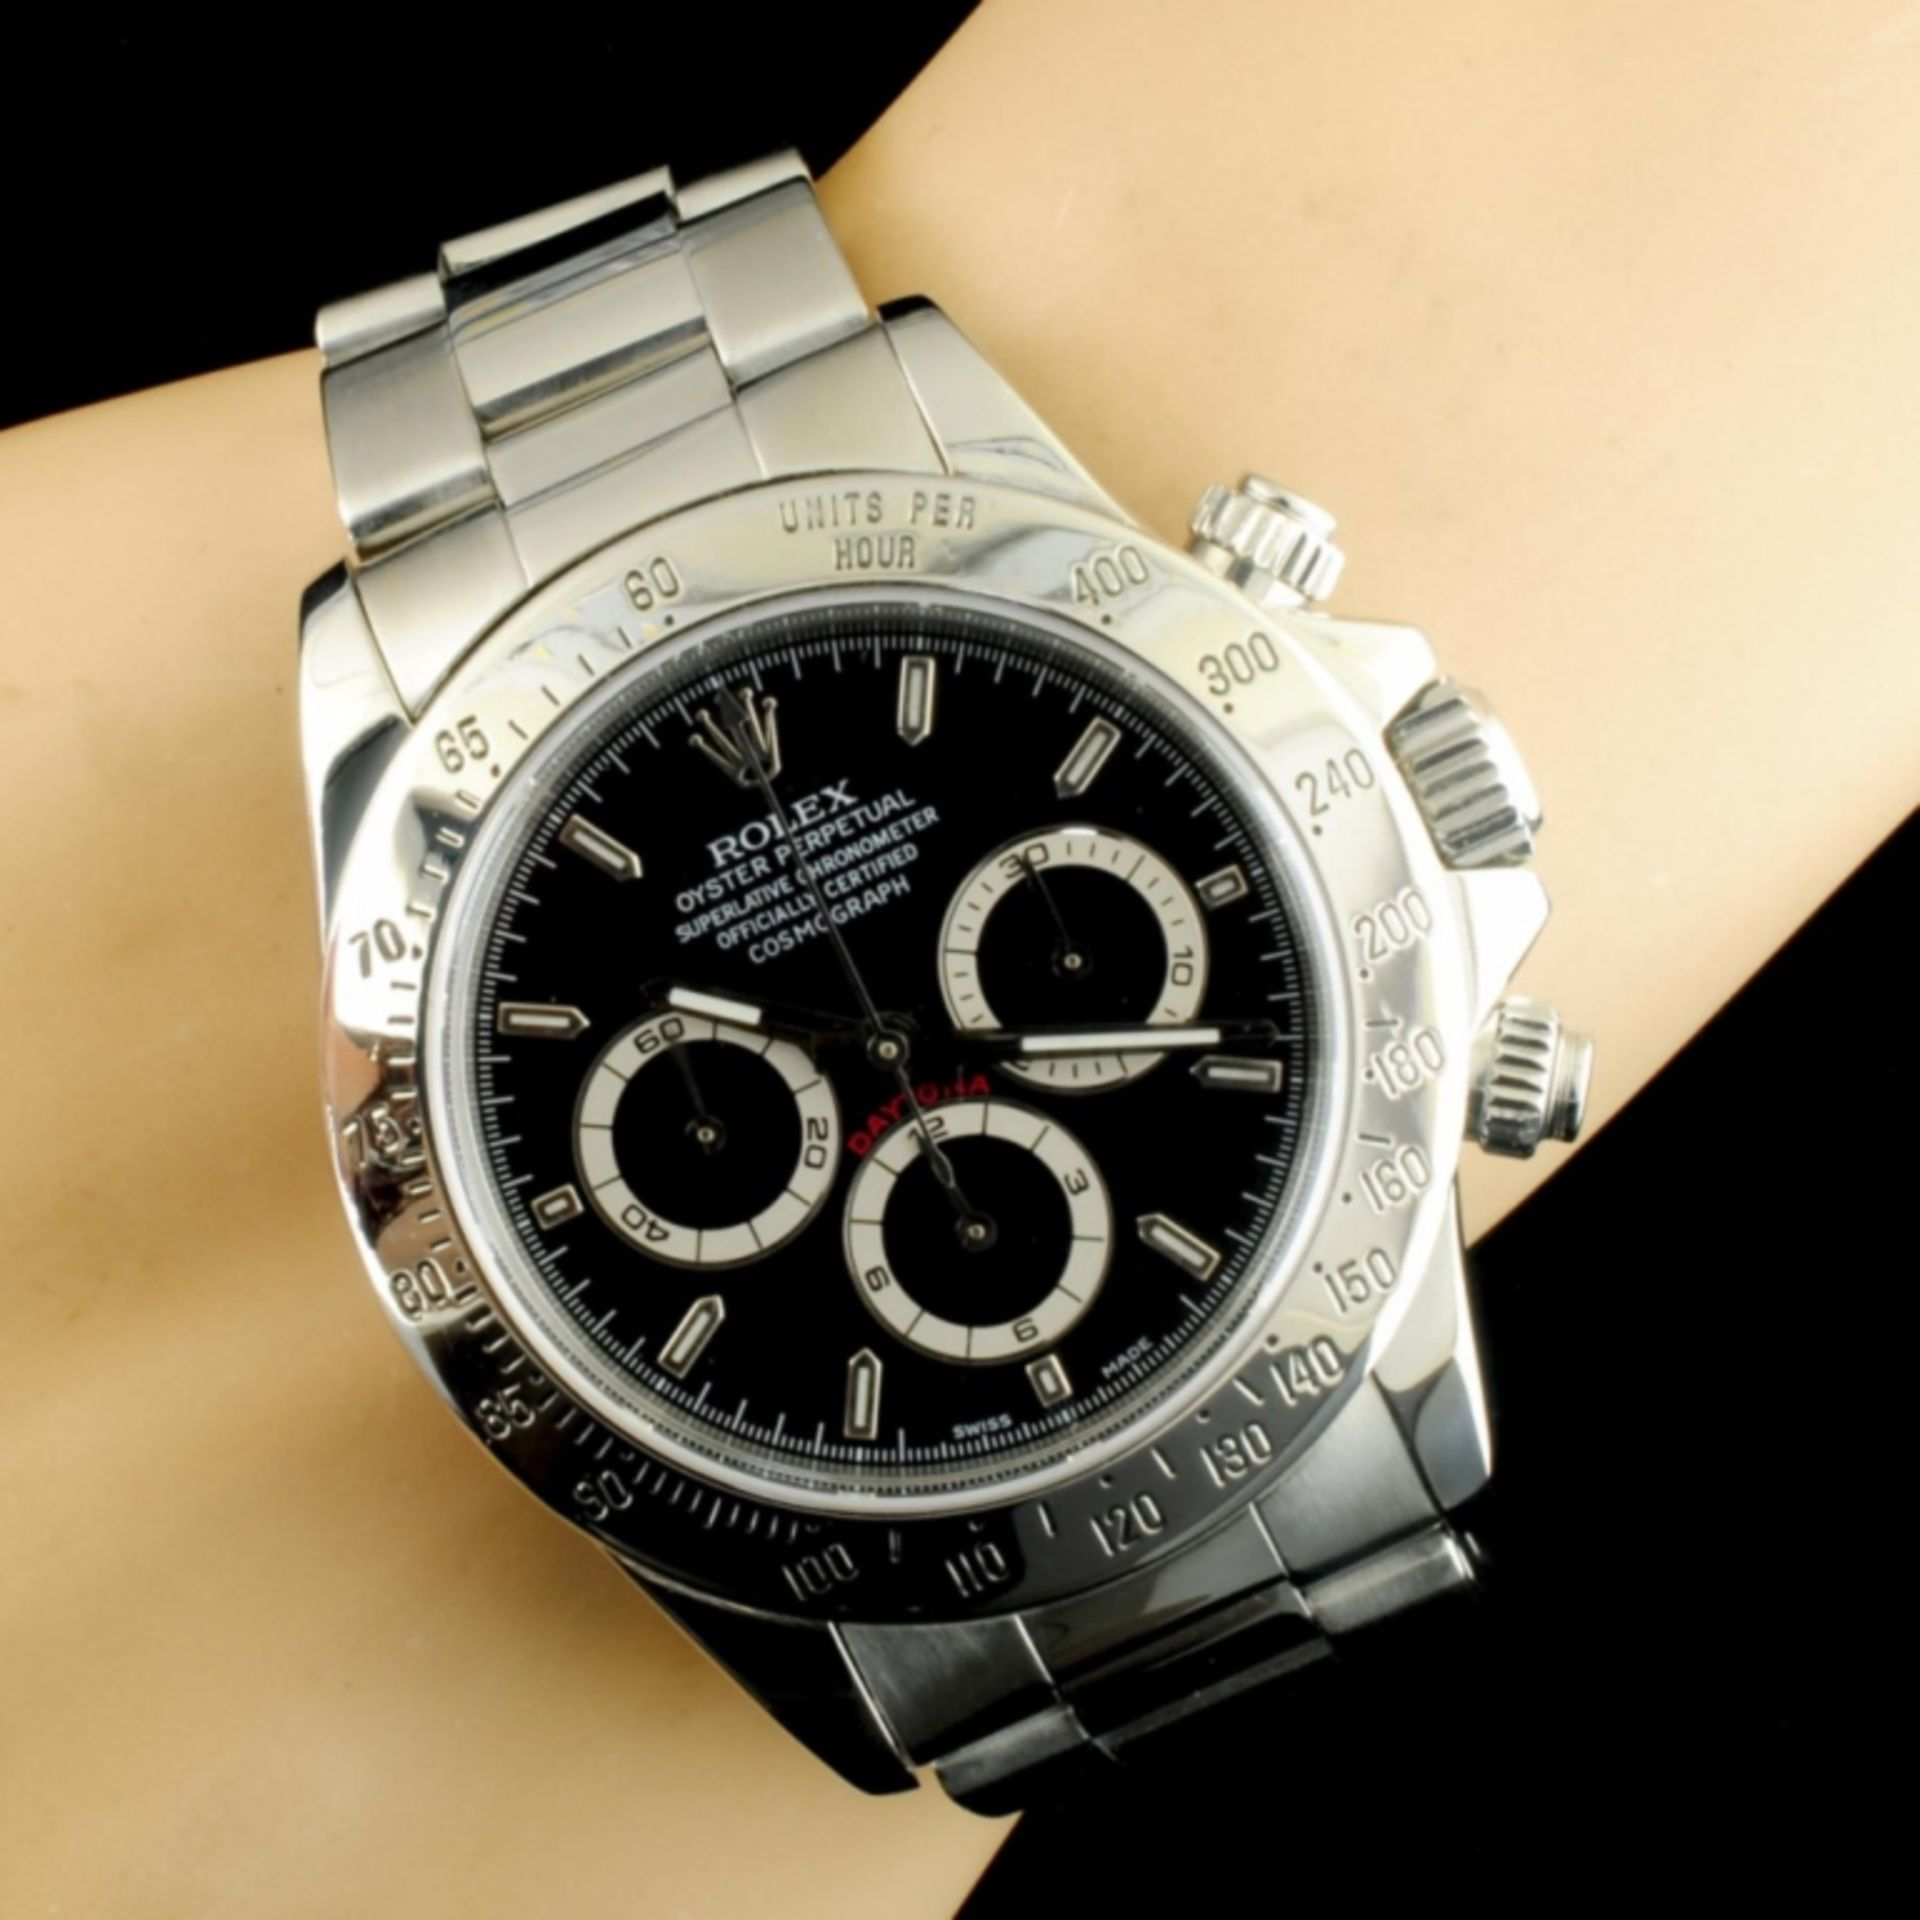 Rolex DAYTONA Cosmograph 16520 40MM Wristwatch - Image 5 of 9